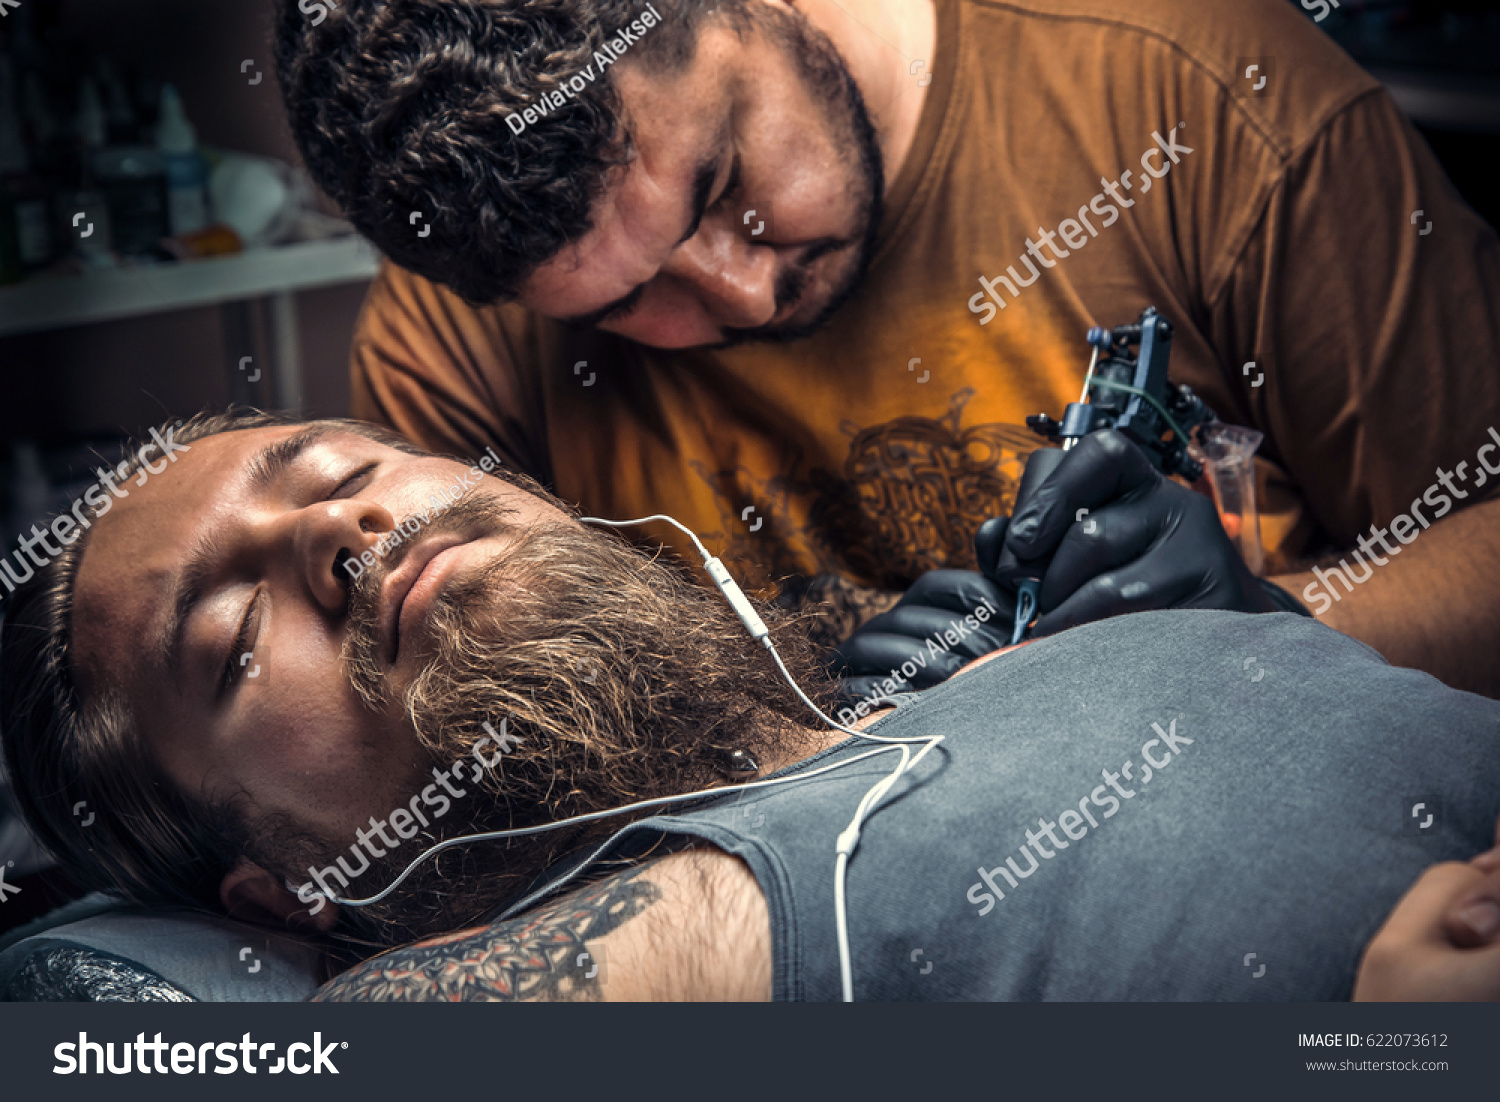 069d6139c Professional tattooer working tattooing in tattoo studio./Professional  tattooist makes tattoo in tattoo parlor